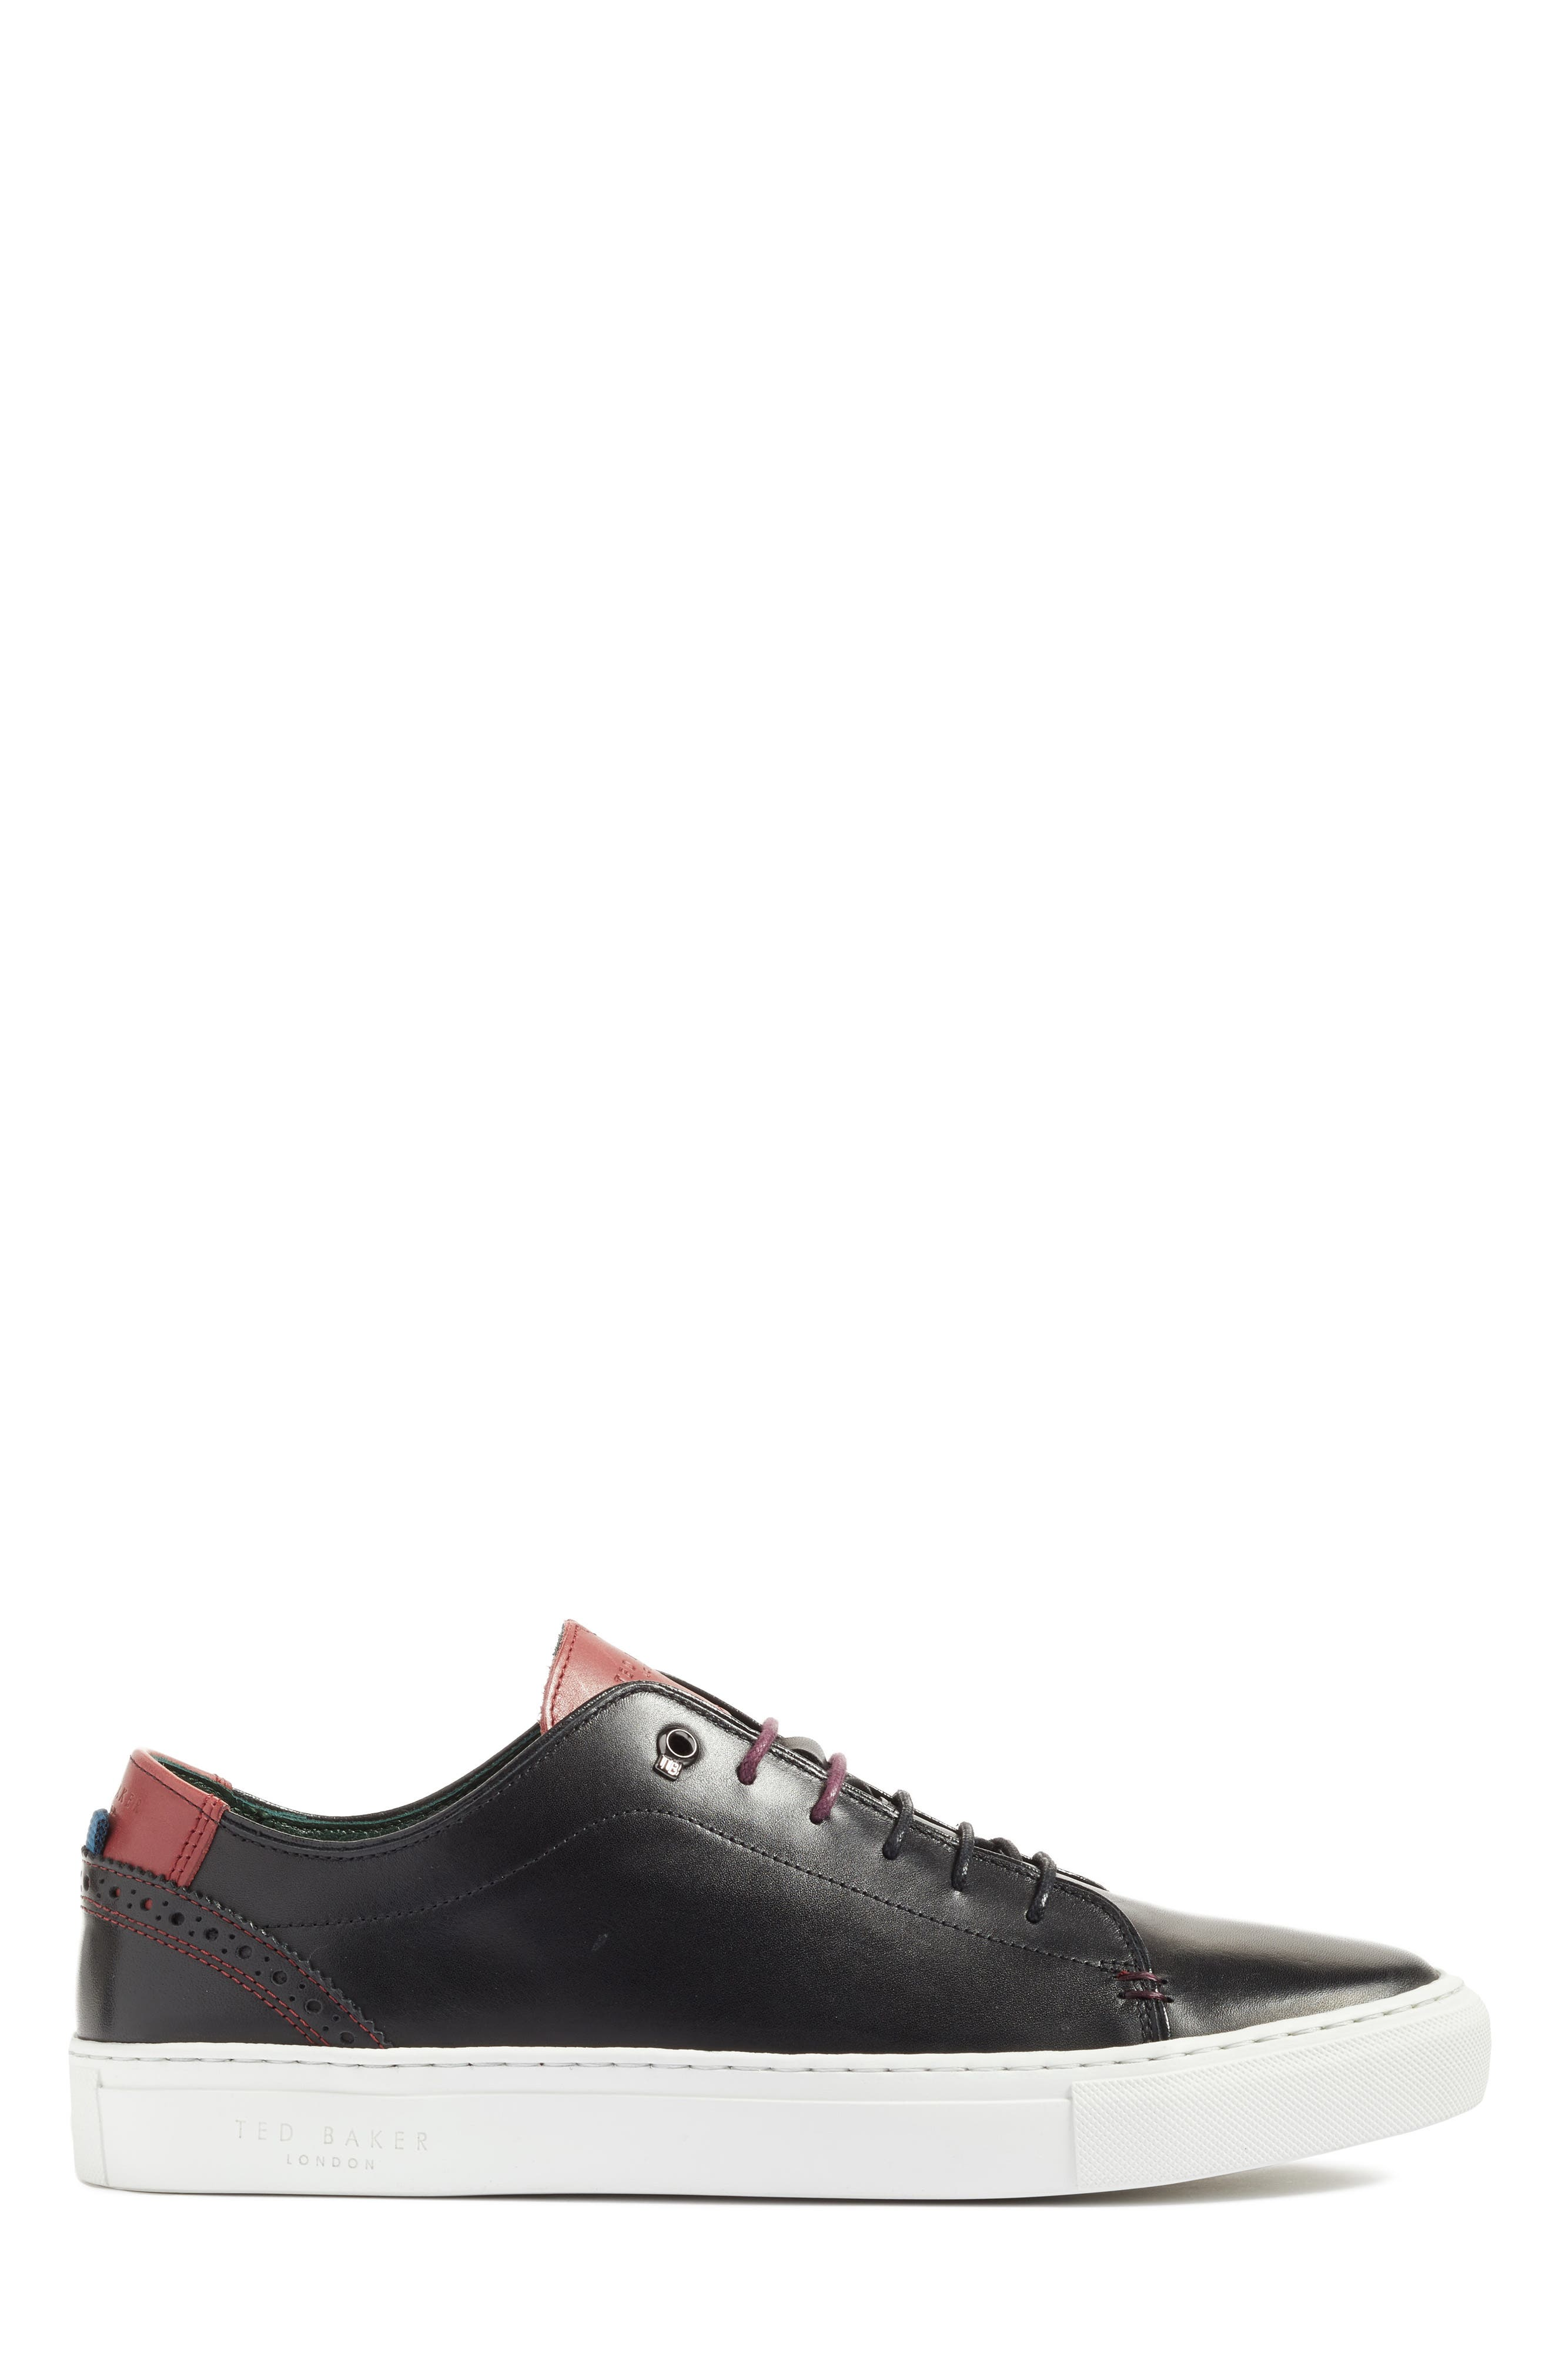 TED BAKER LONDON 'Kiing Classic' Sneaker, Main, color, 001